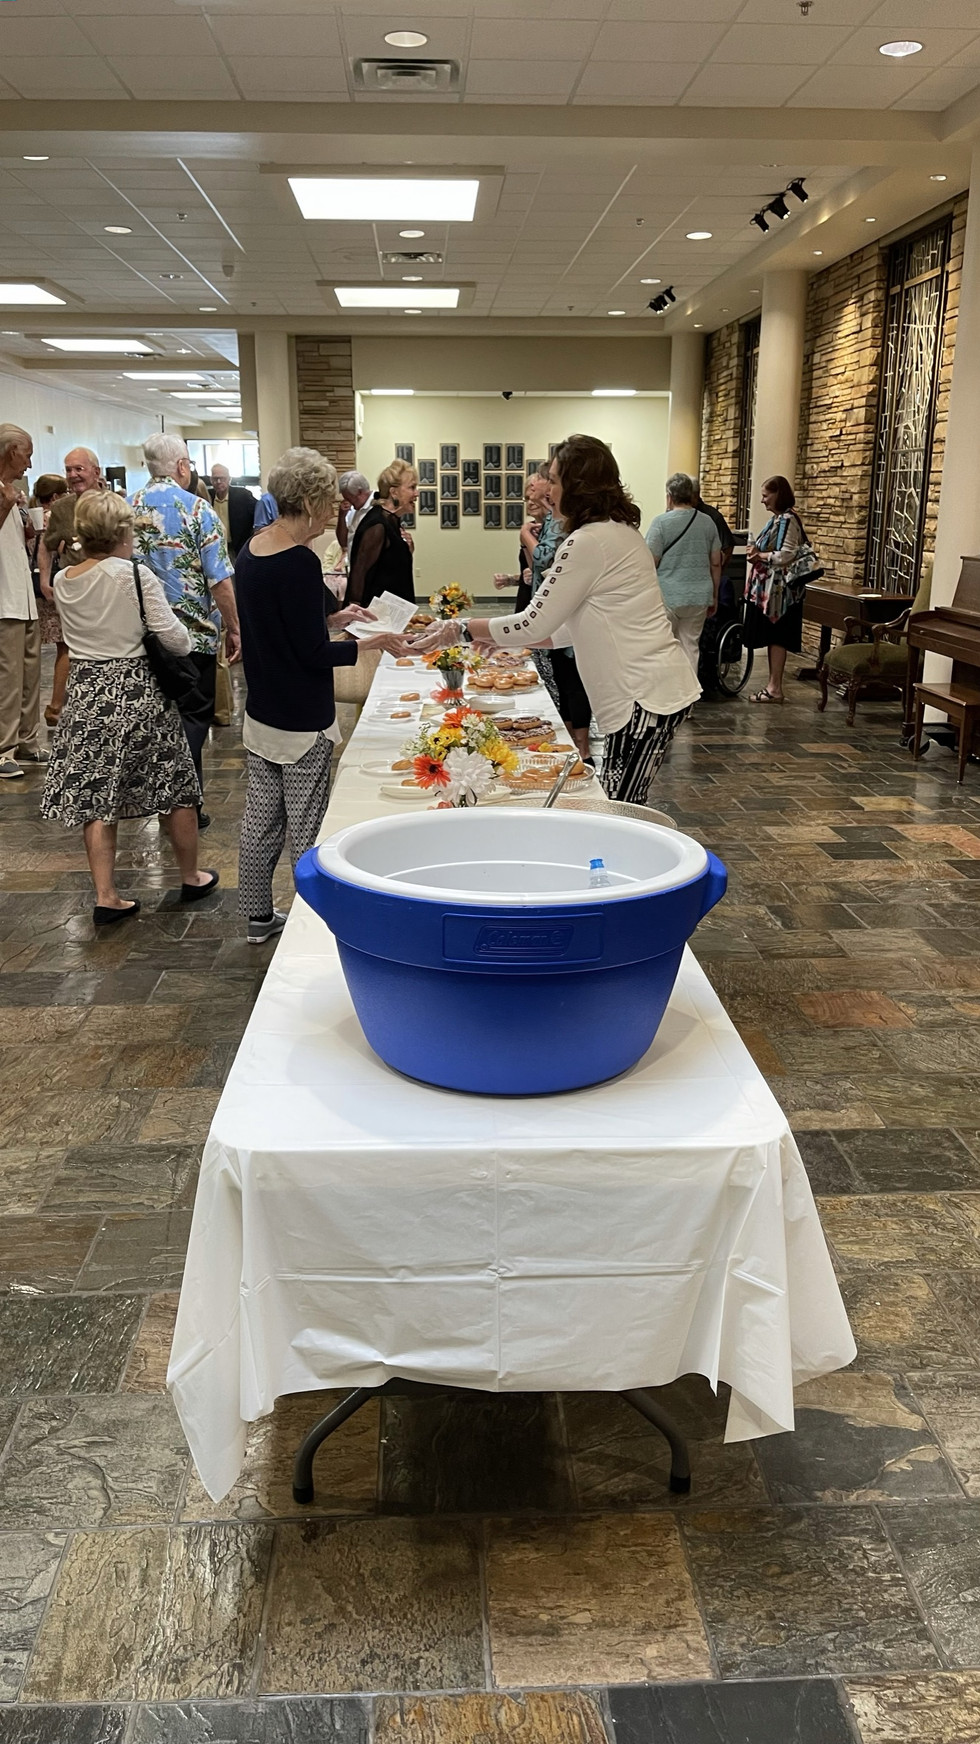 Last Sunday we held a reception to say our last goodbyes to Amanda and her family.